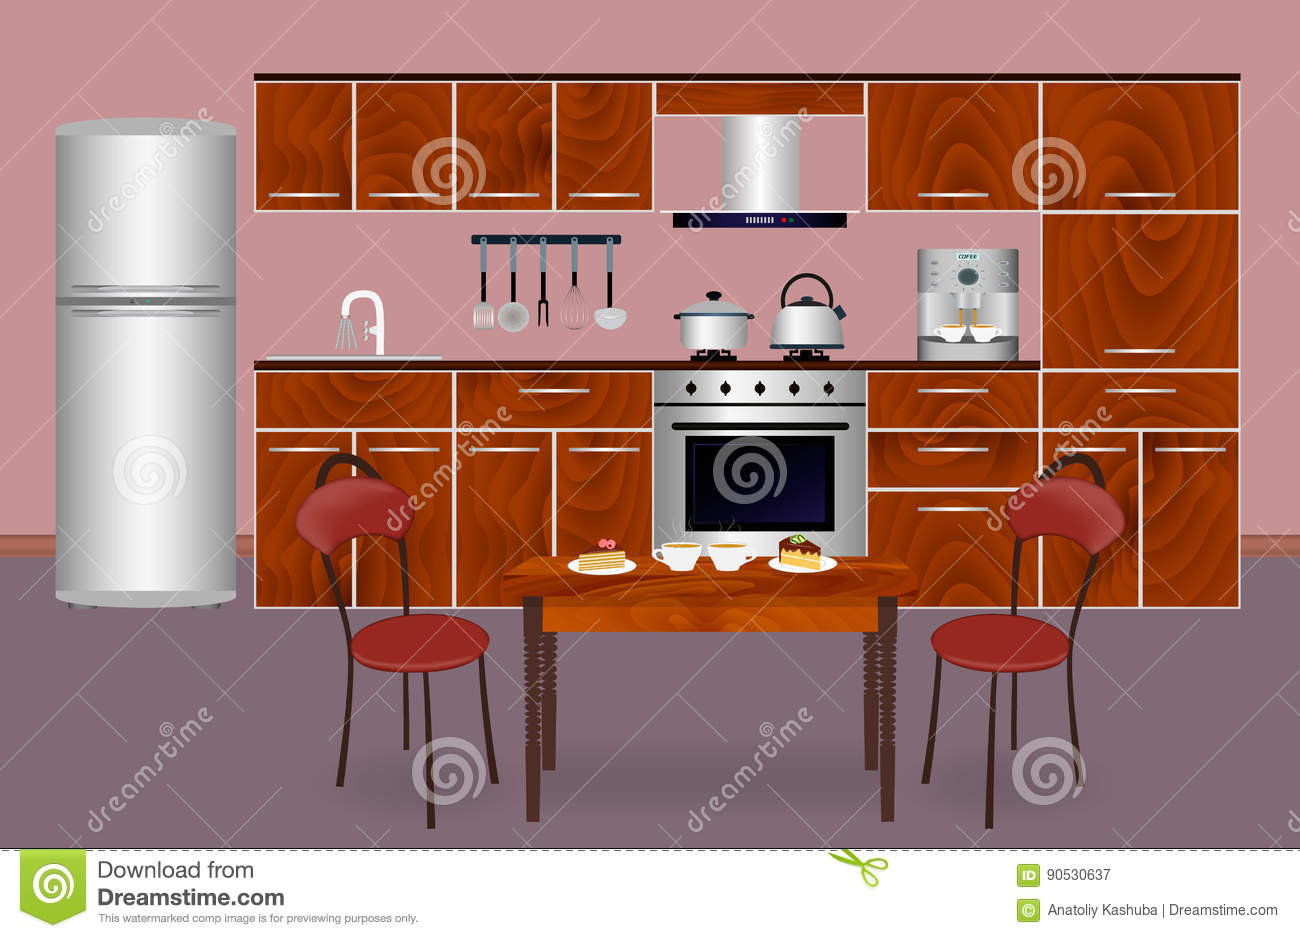 Interior wooden shelves free vector - Wooden Kitchen Interior Banner For Your Web Design Housewife Workplace Organization Stock Vector